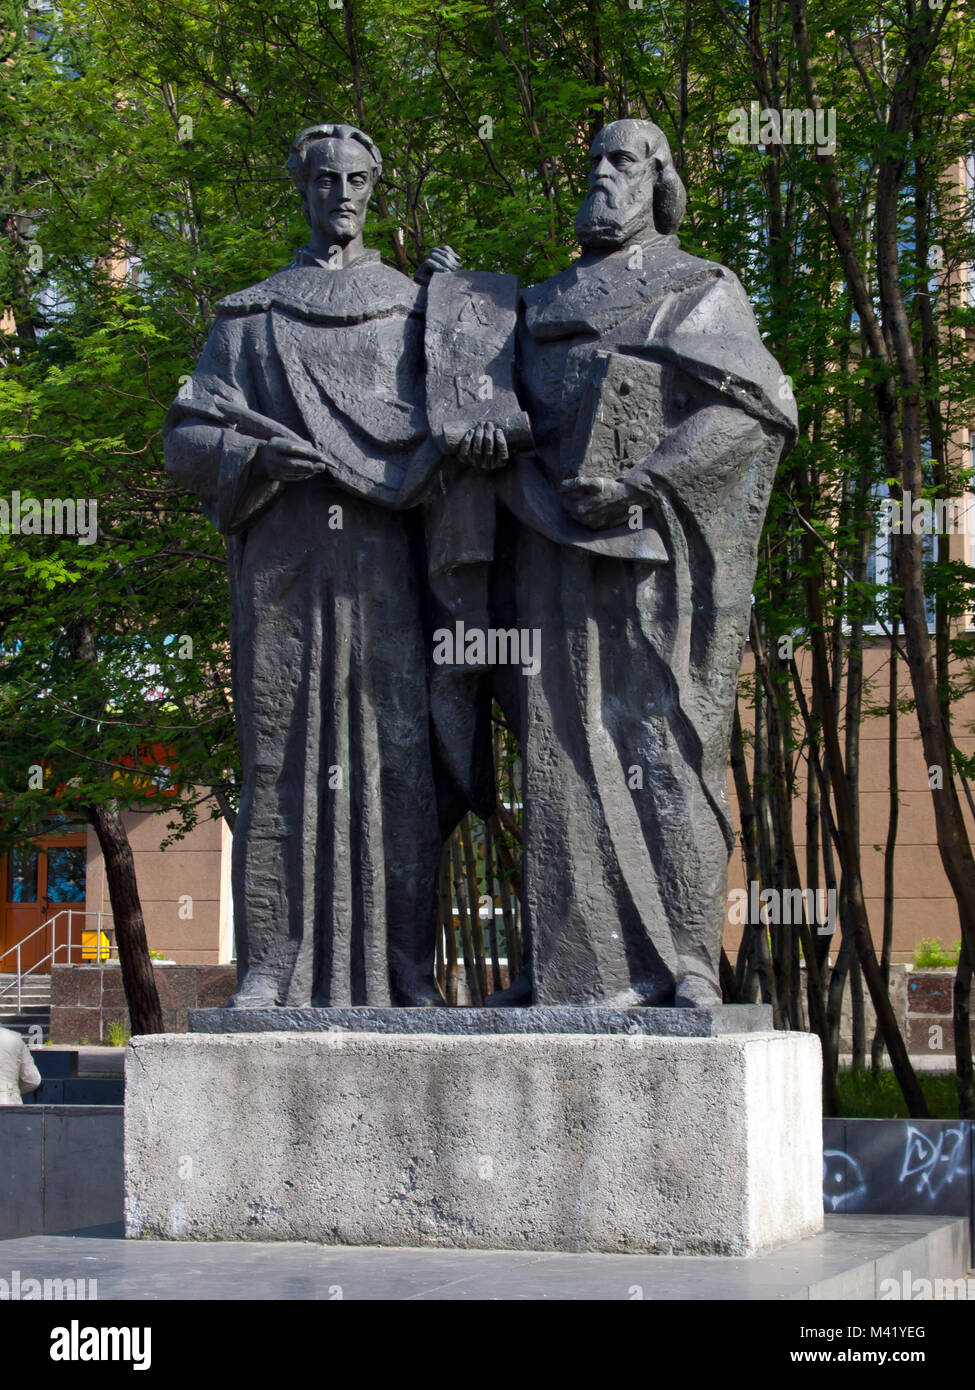 Murmansk, Russia - June 19, 2013, Monument to the creators of the Slavic alphabet Saints Cyril and Methodius - Stock Image